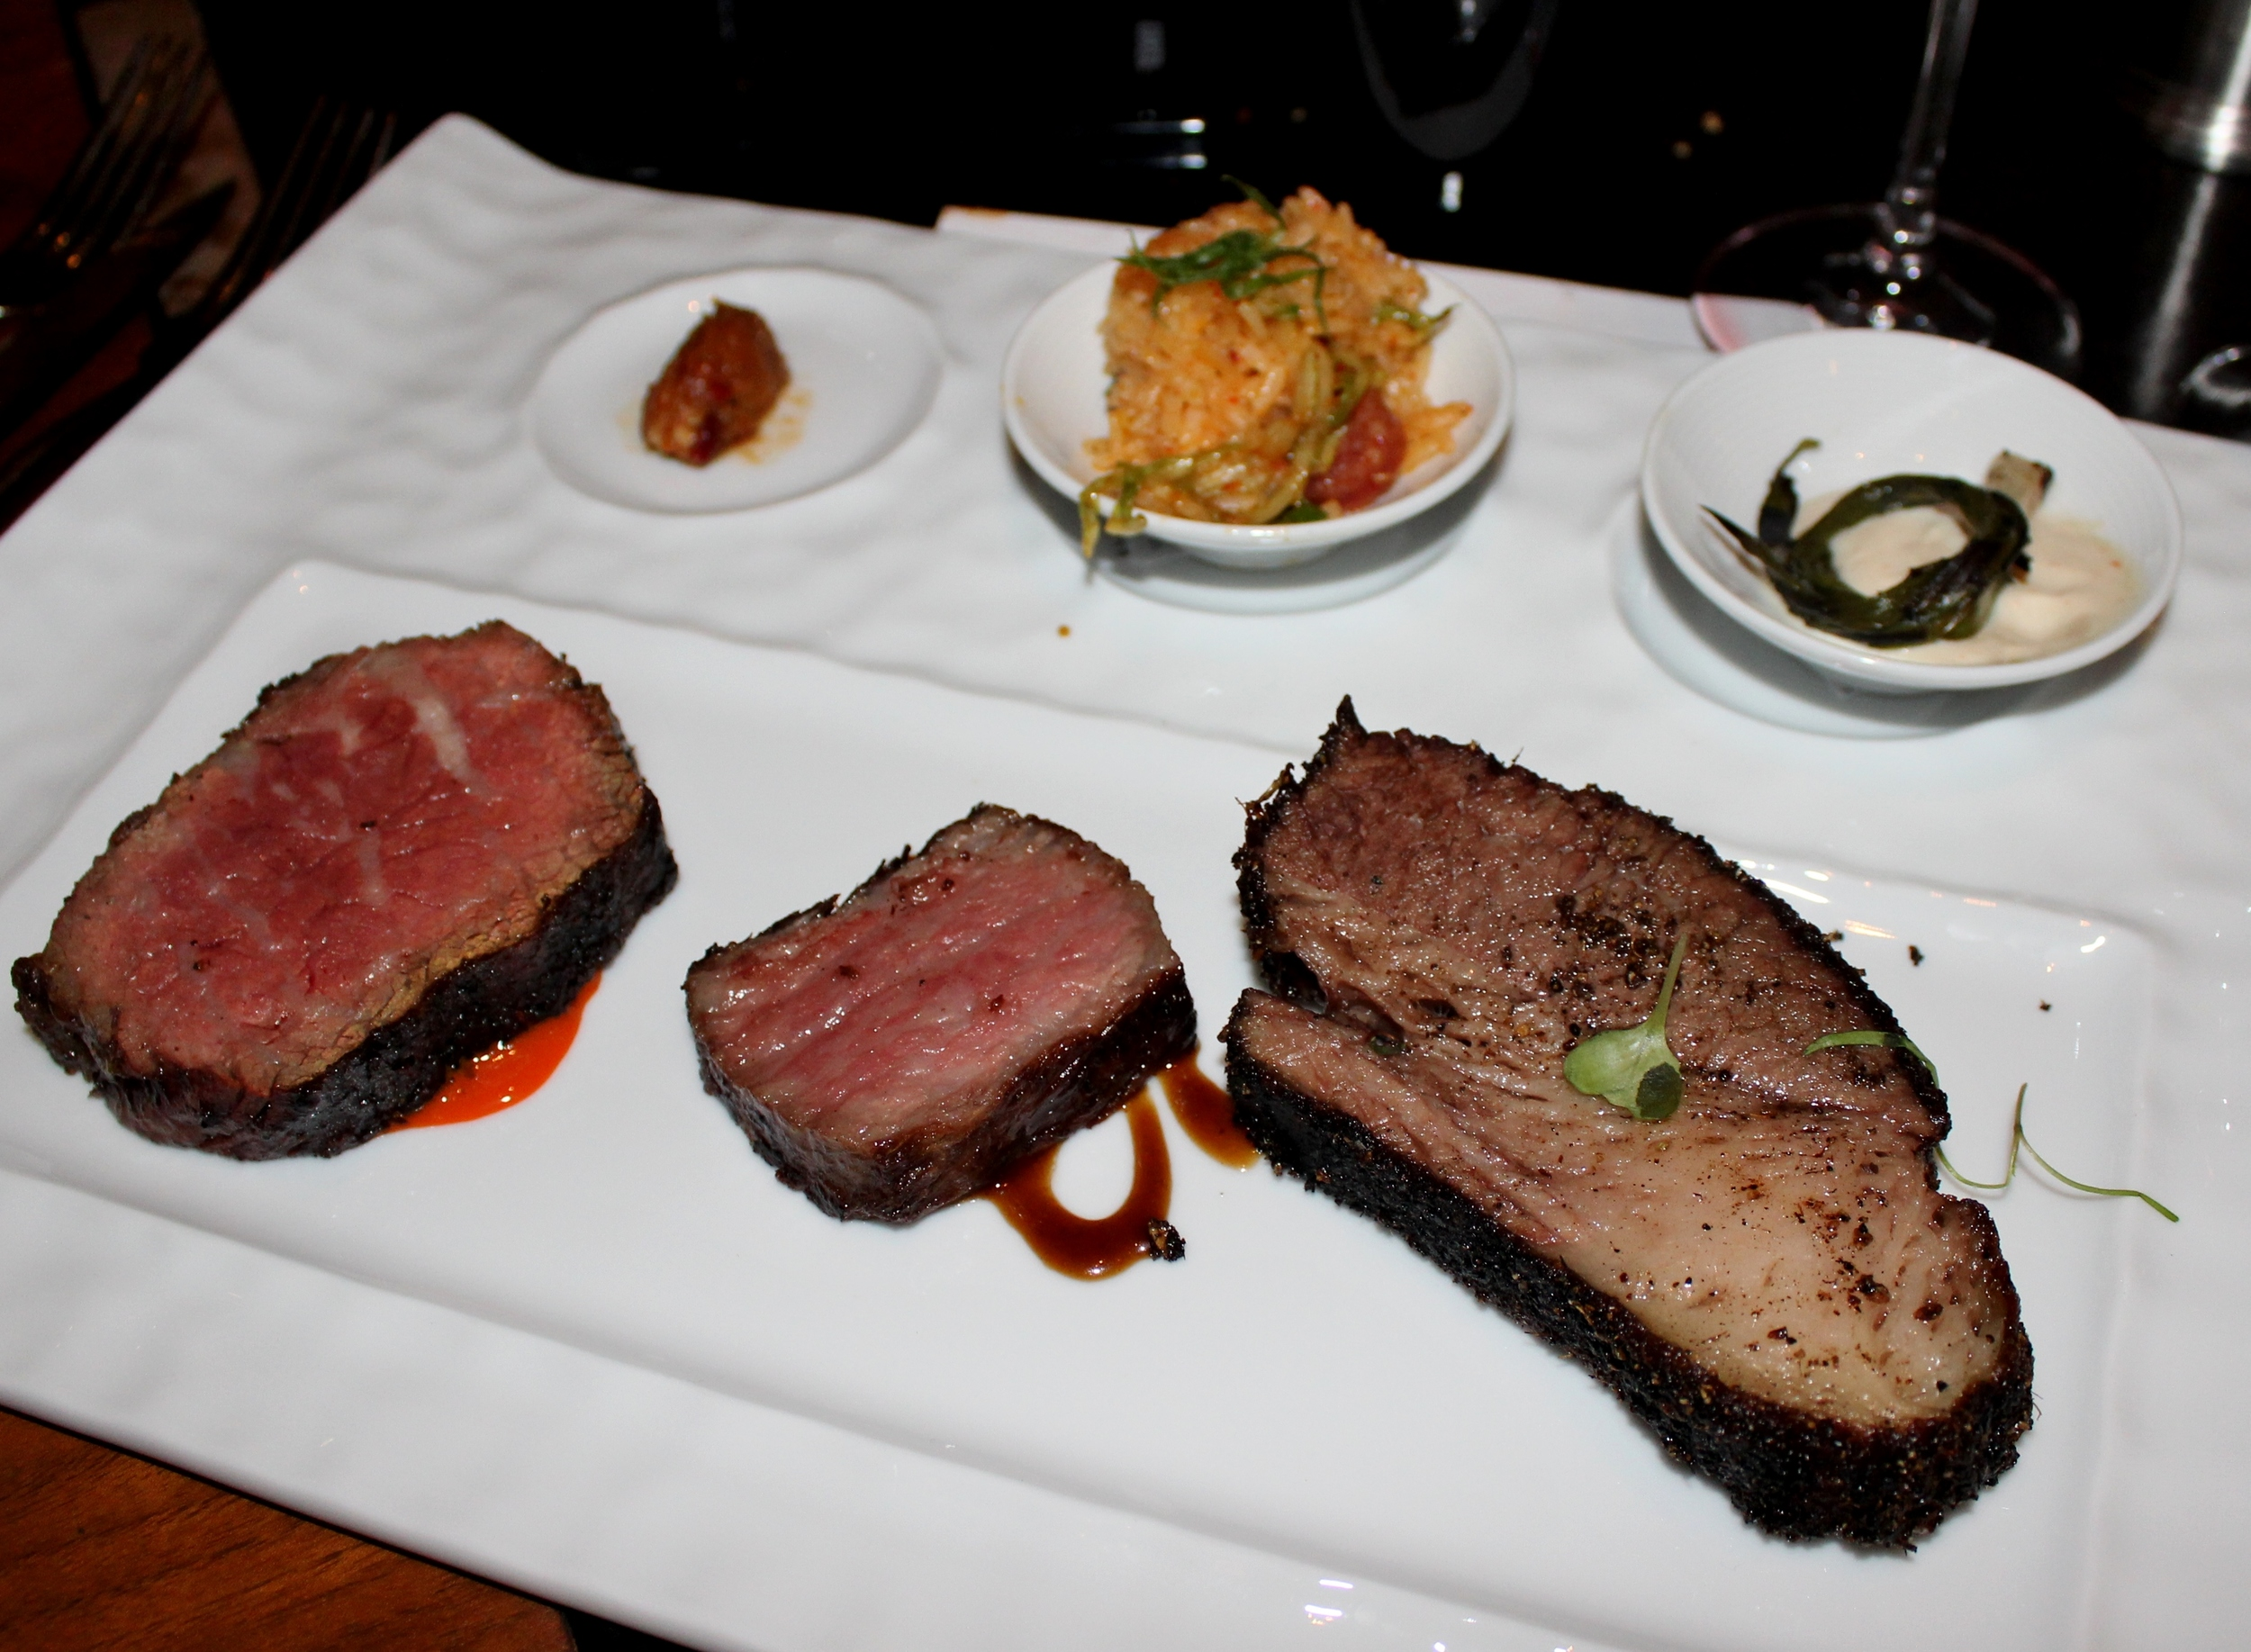 Dry-aged beef, A5 wagyu and Yemenite spiced brisket. Accompaniments: Calabrian chile XO sauce, foie gras fried rice, scallion cream